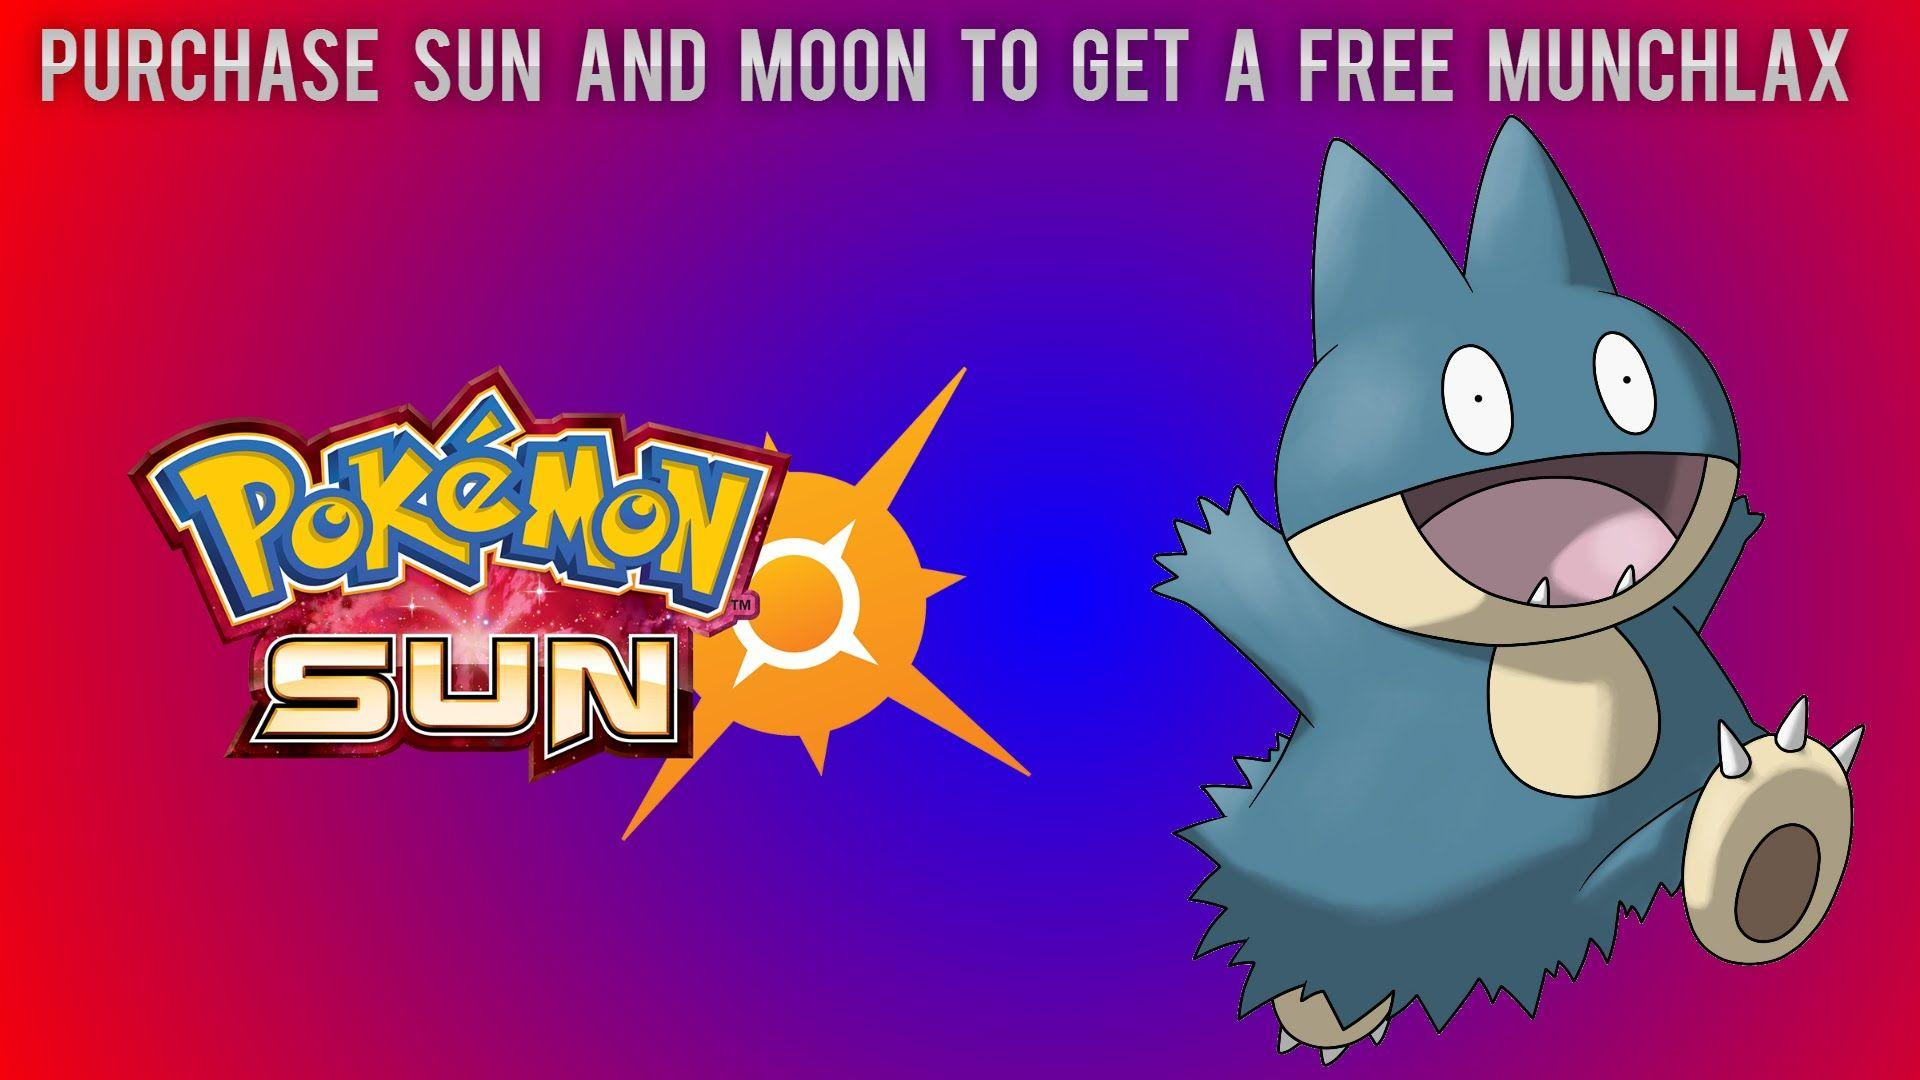 Purchase Sun And Moon To Get A Free Munchlax - YouTube